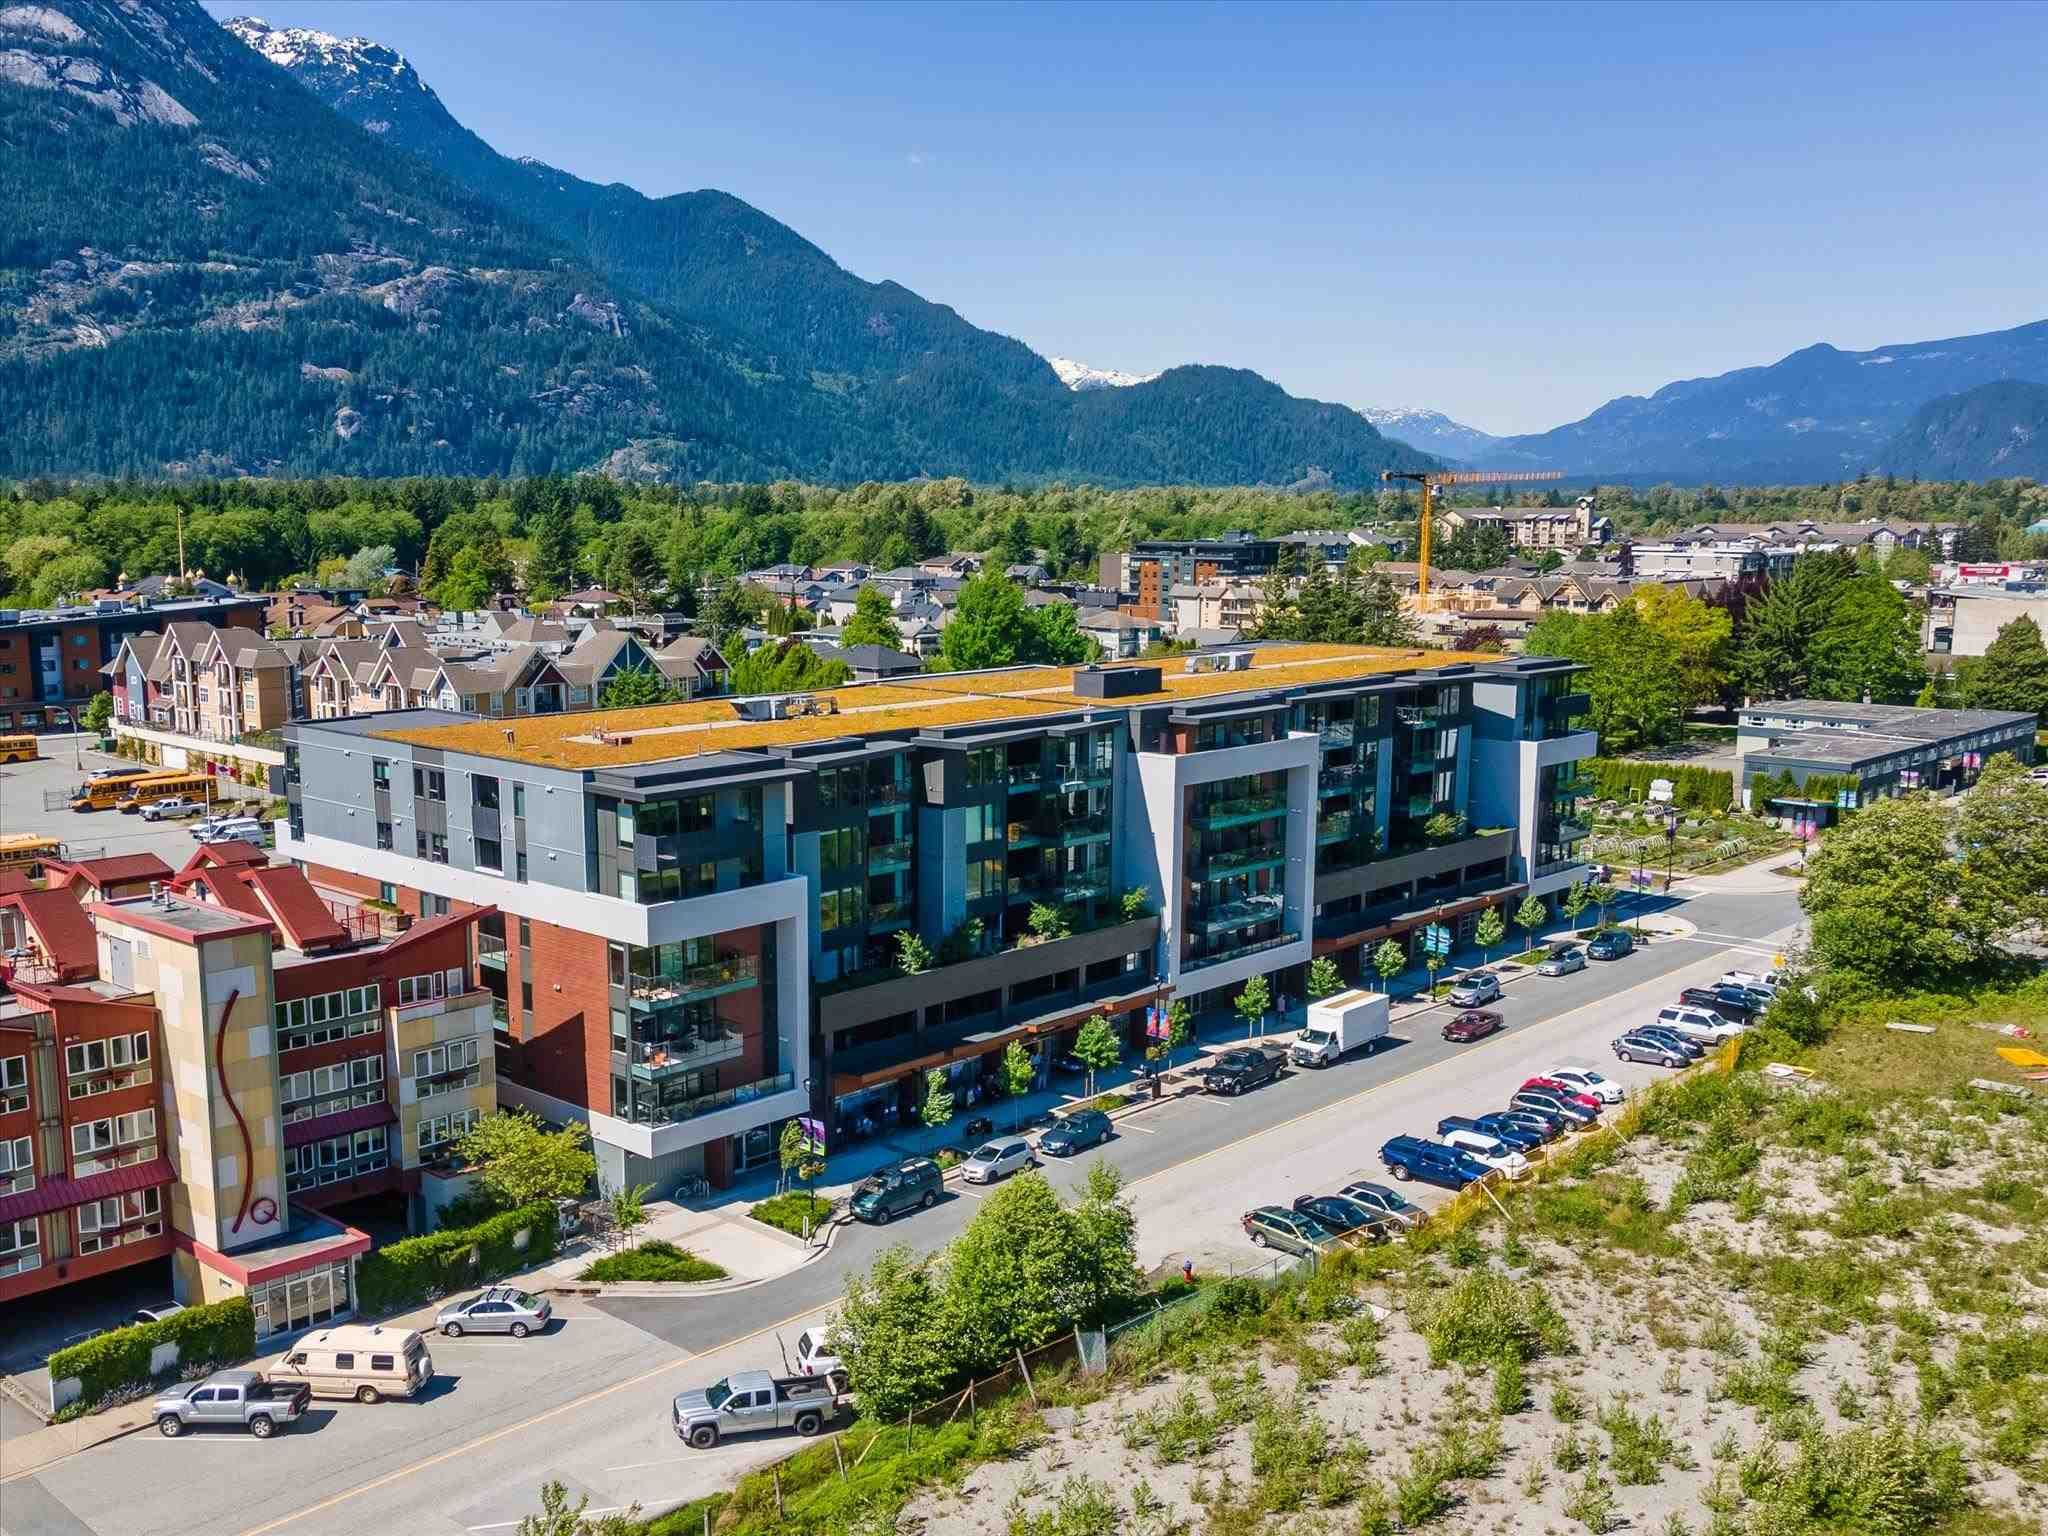 """Main Photo: 306 37881 CLEVELAND Avenue in Squamish: Downtown SQ Condo for sale in """"THE MAIN"""" : MLS®# R2608145"""